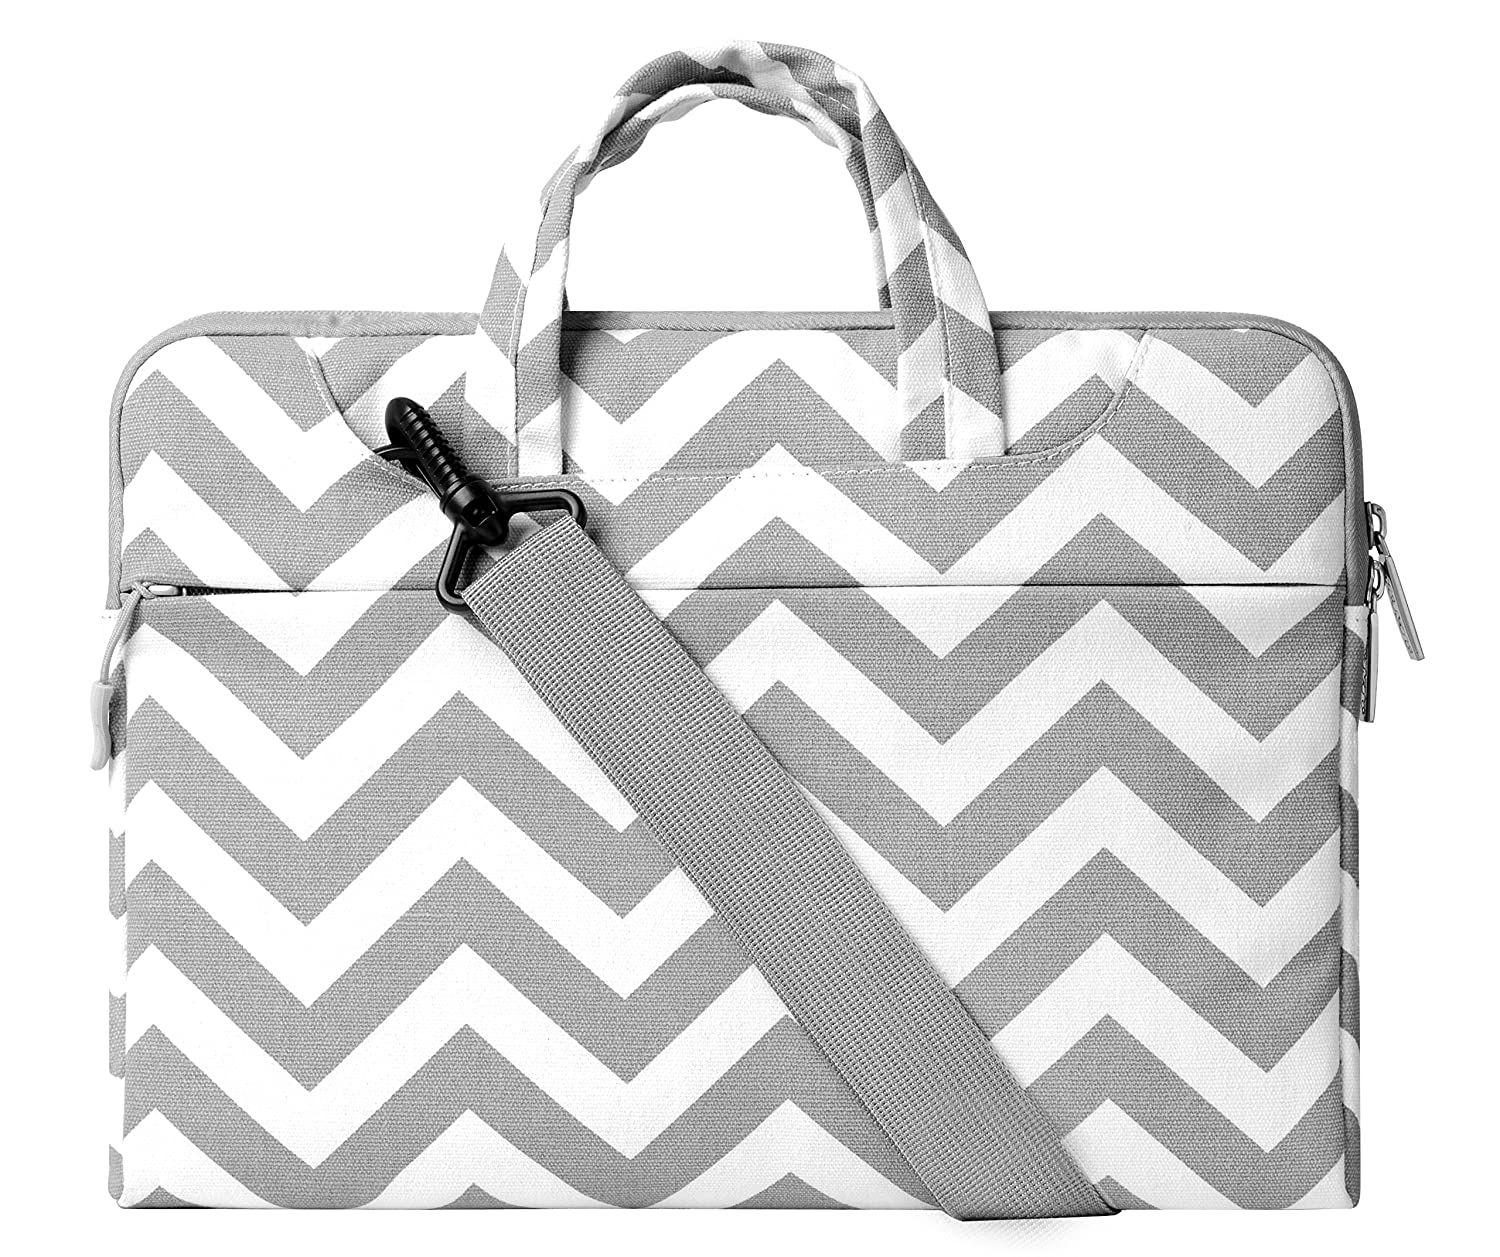 Laptop Shoulder Bag / Briefcase, Mosiso Chevron Gray Canvas Fabric Carrying Case Bag for 12.9 iPad Pro / 13.3 Inch Laptop / Notebook Computer / MacBook Air / MacBook Pro, Chevron Gray